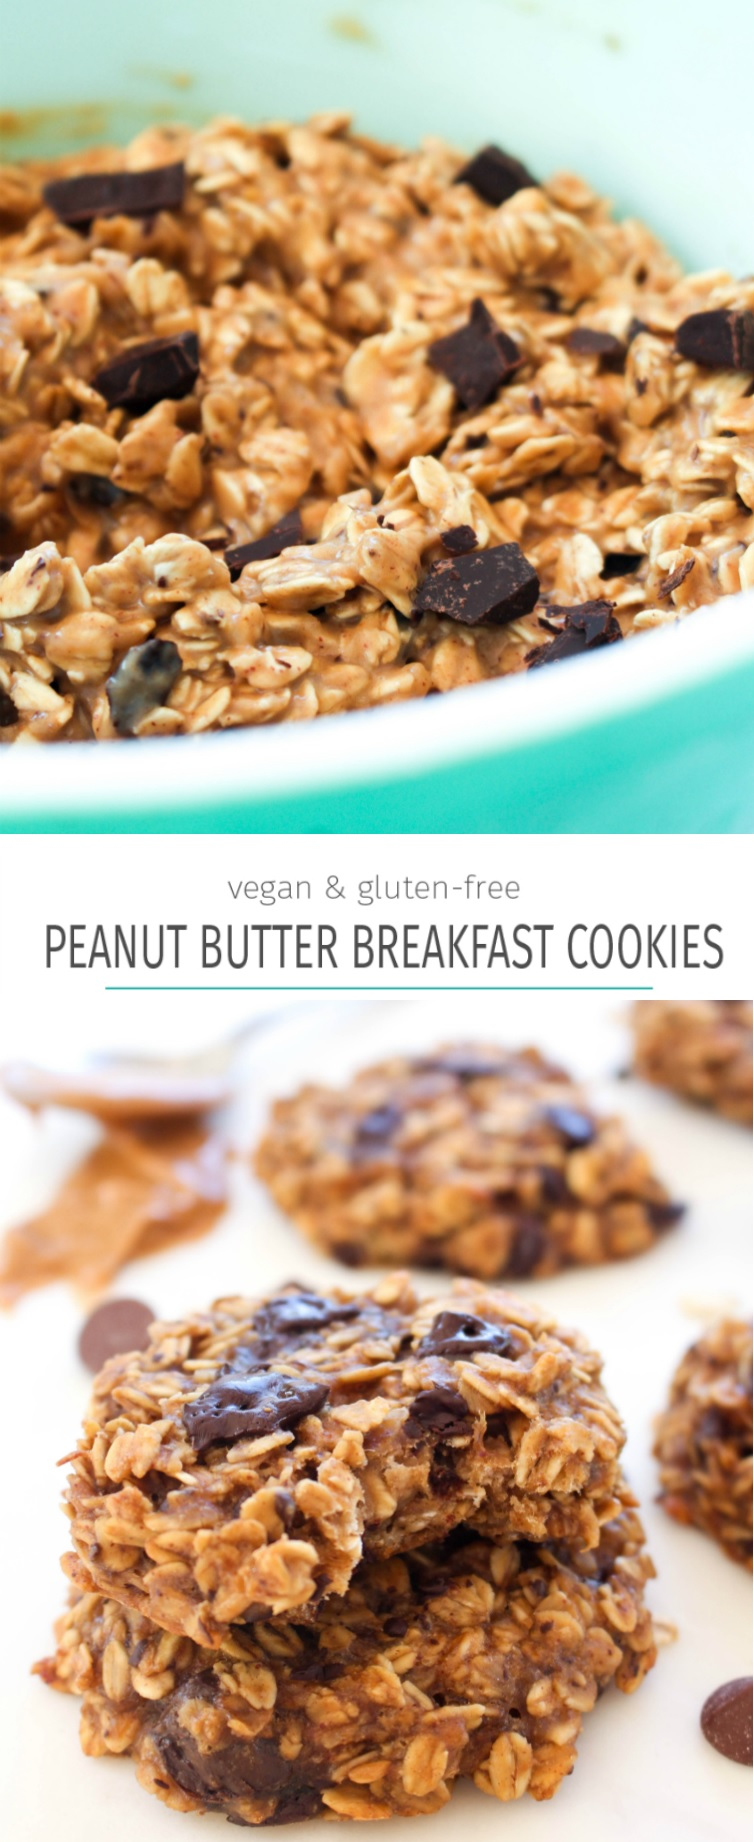 Peanut butter banana breakfast cookies collage